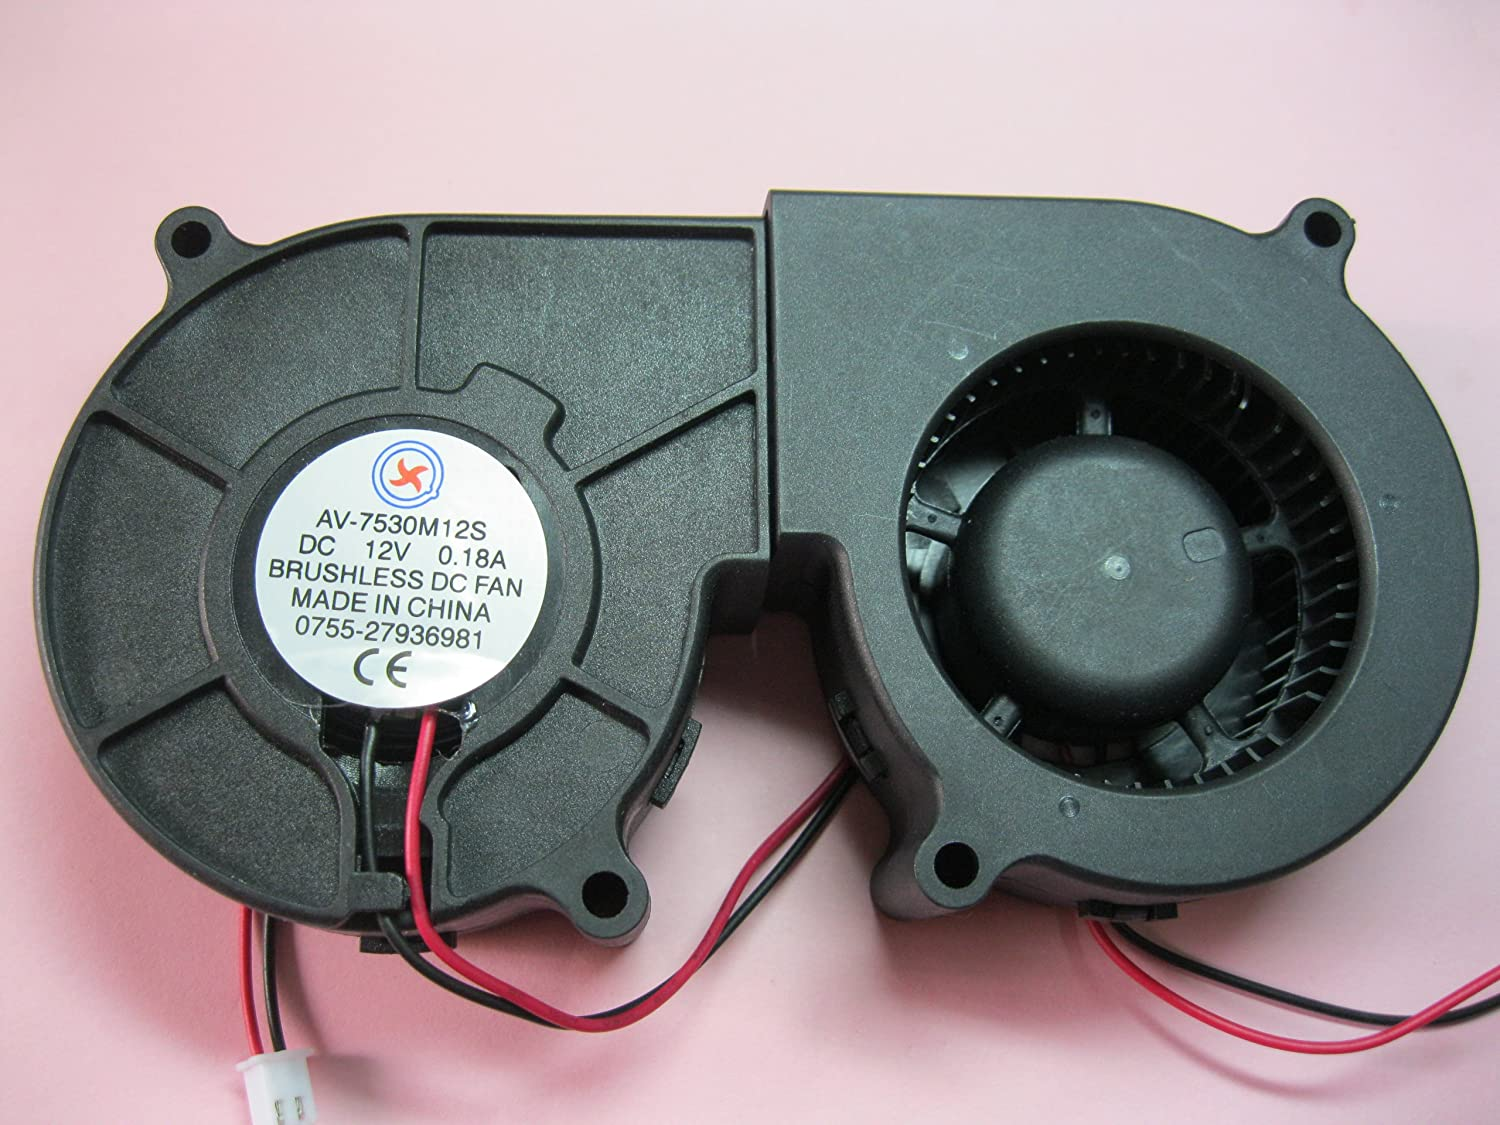 2 pcs Brushless DC Blower Fan 7530S 12V 2 Wires 75x75x30mm Sleeve-Bearing Skywalking